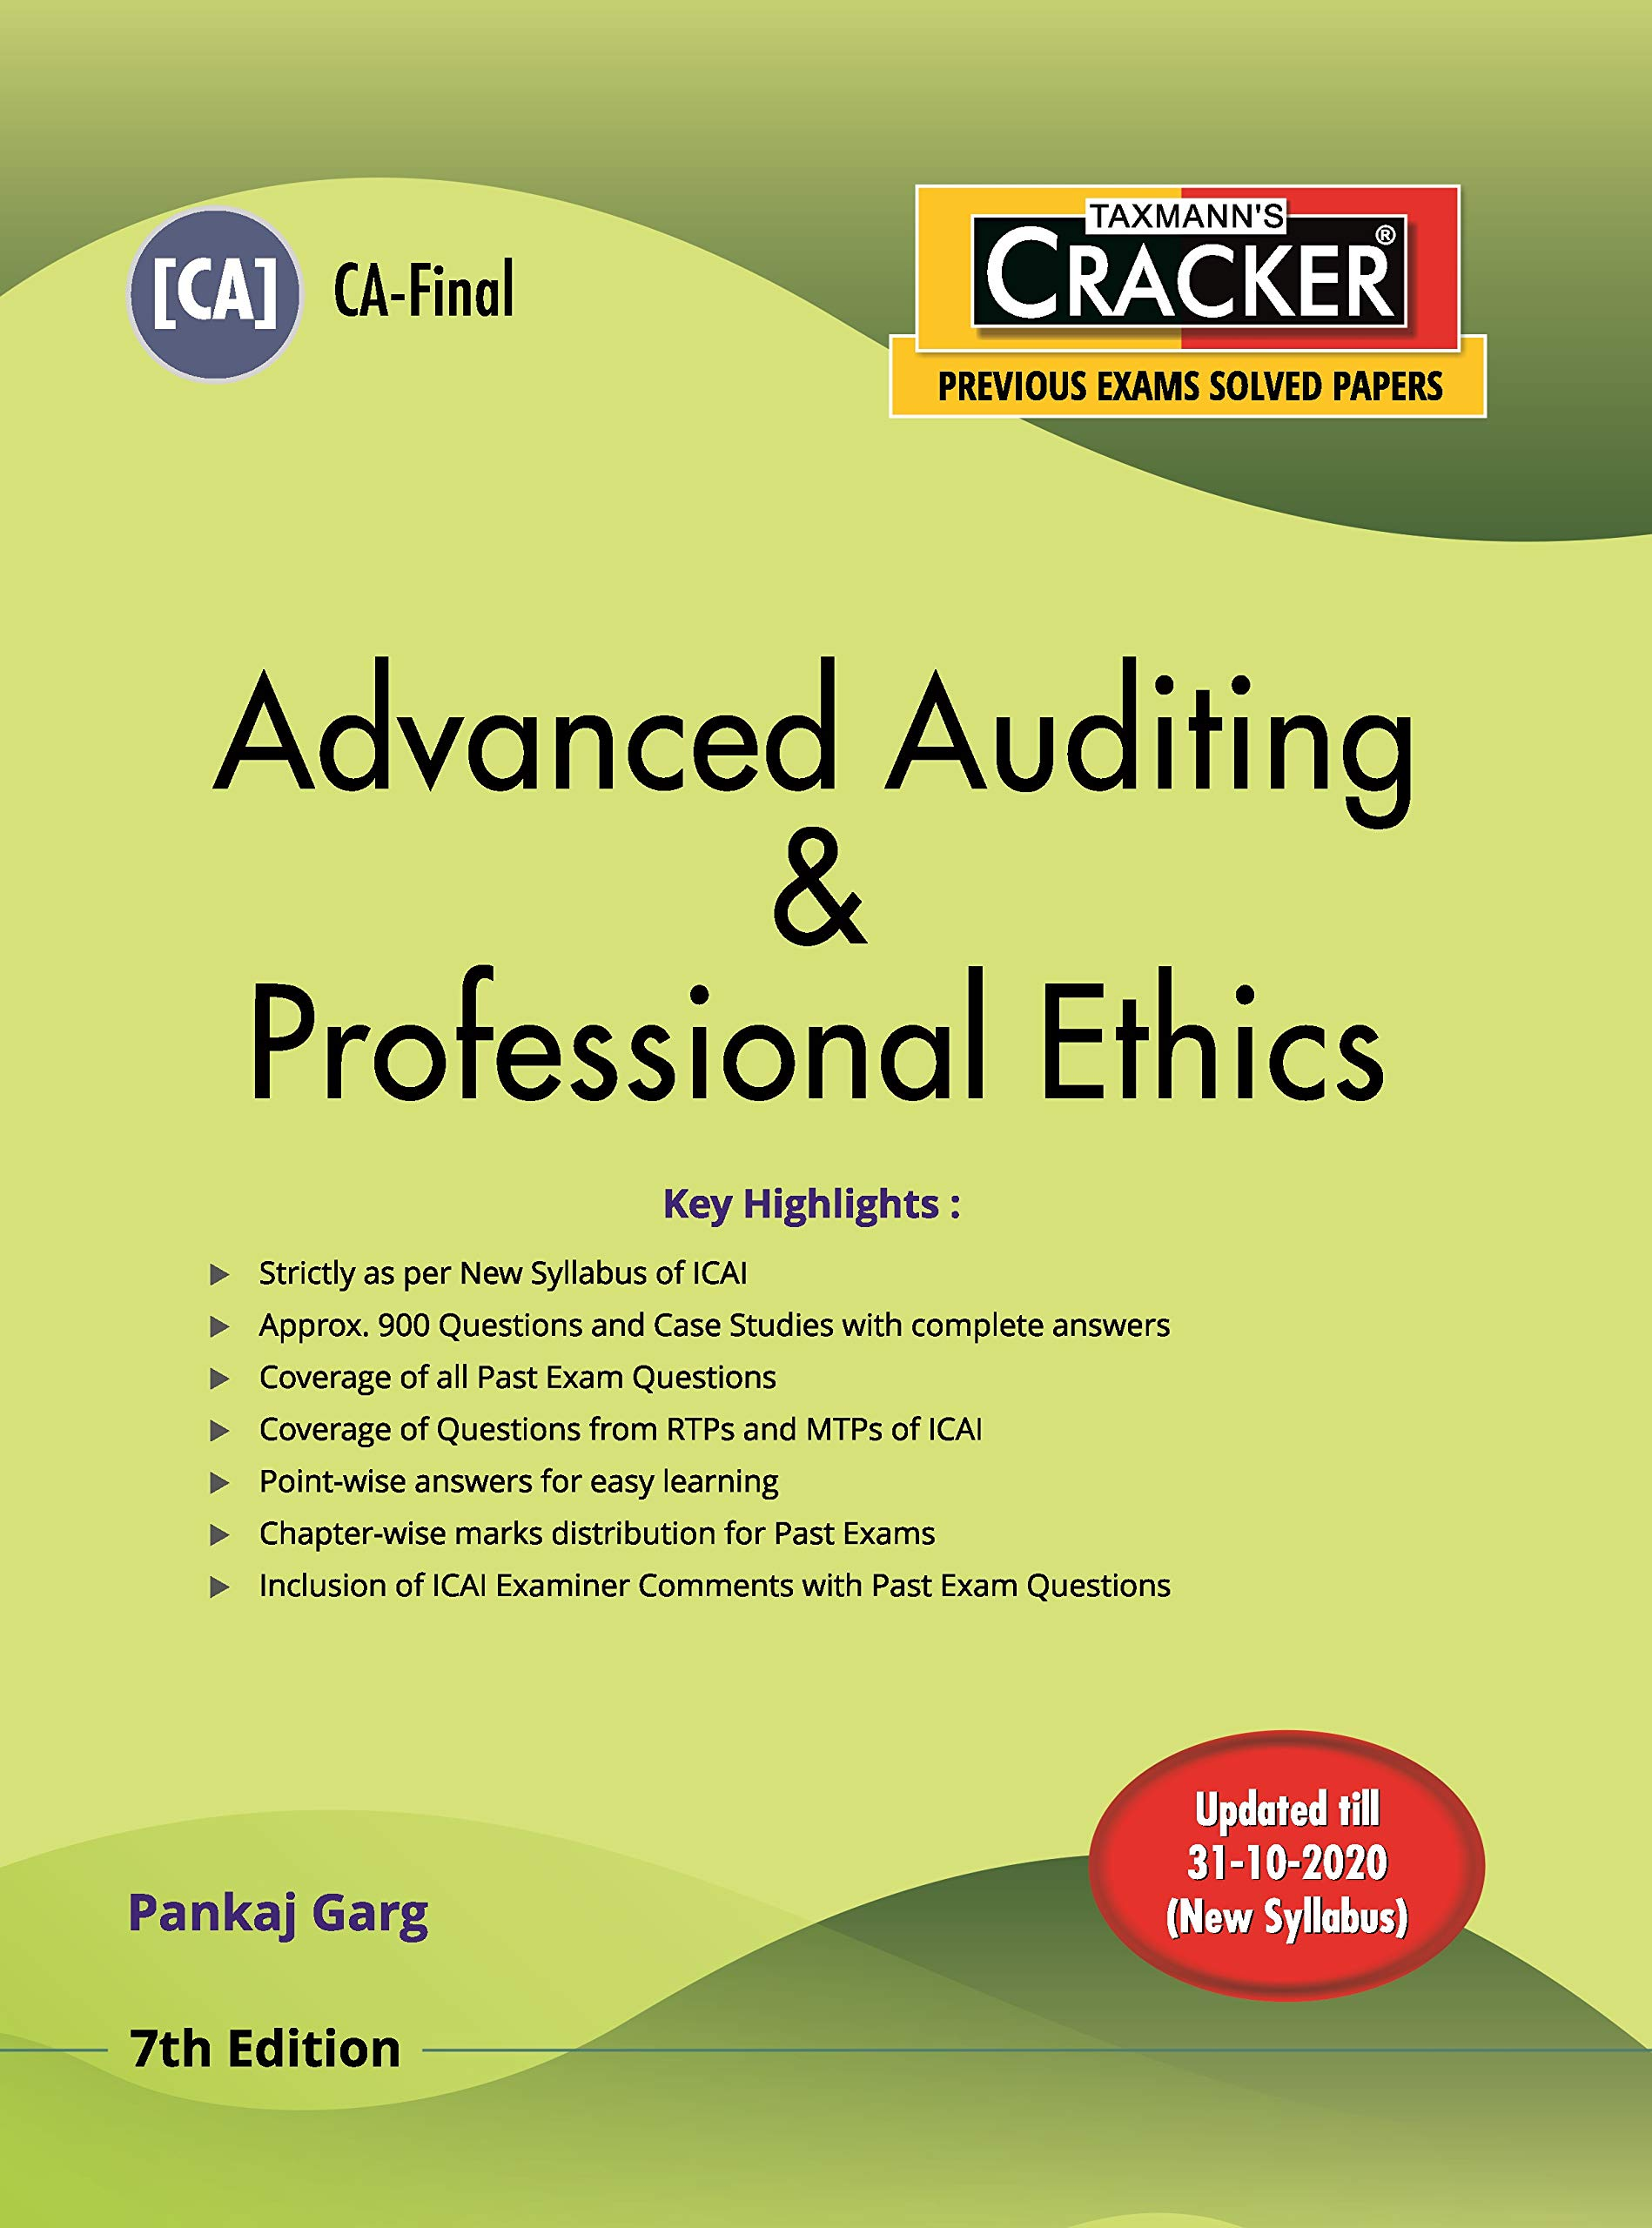 Taxmann's CRACKER–Advanced Auditing & Professional Ethics I CA Final–New Syllabus | Updated till 31-10-2020 | 7th Edition | December 2020